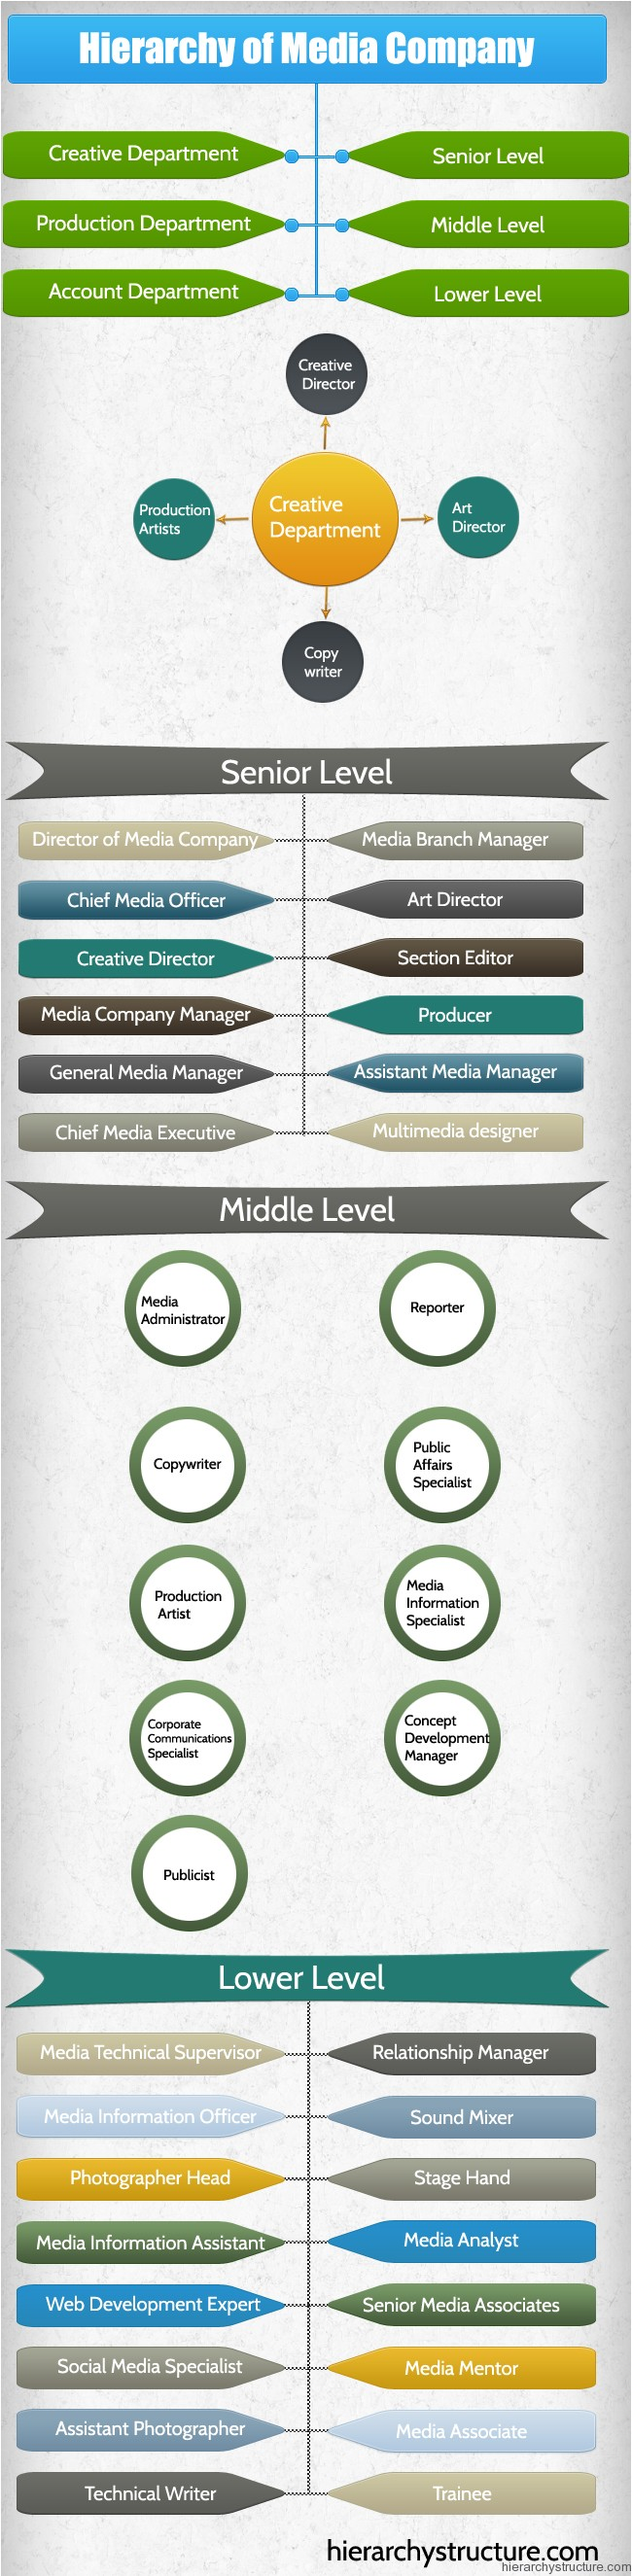 Hierarchy of Media Company